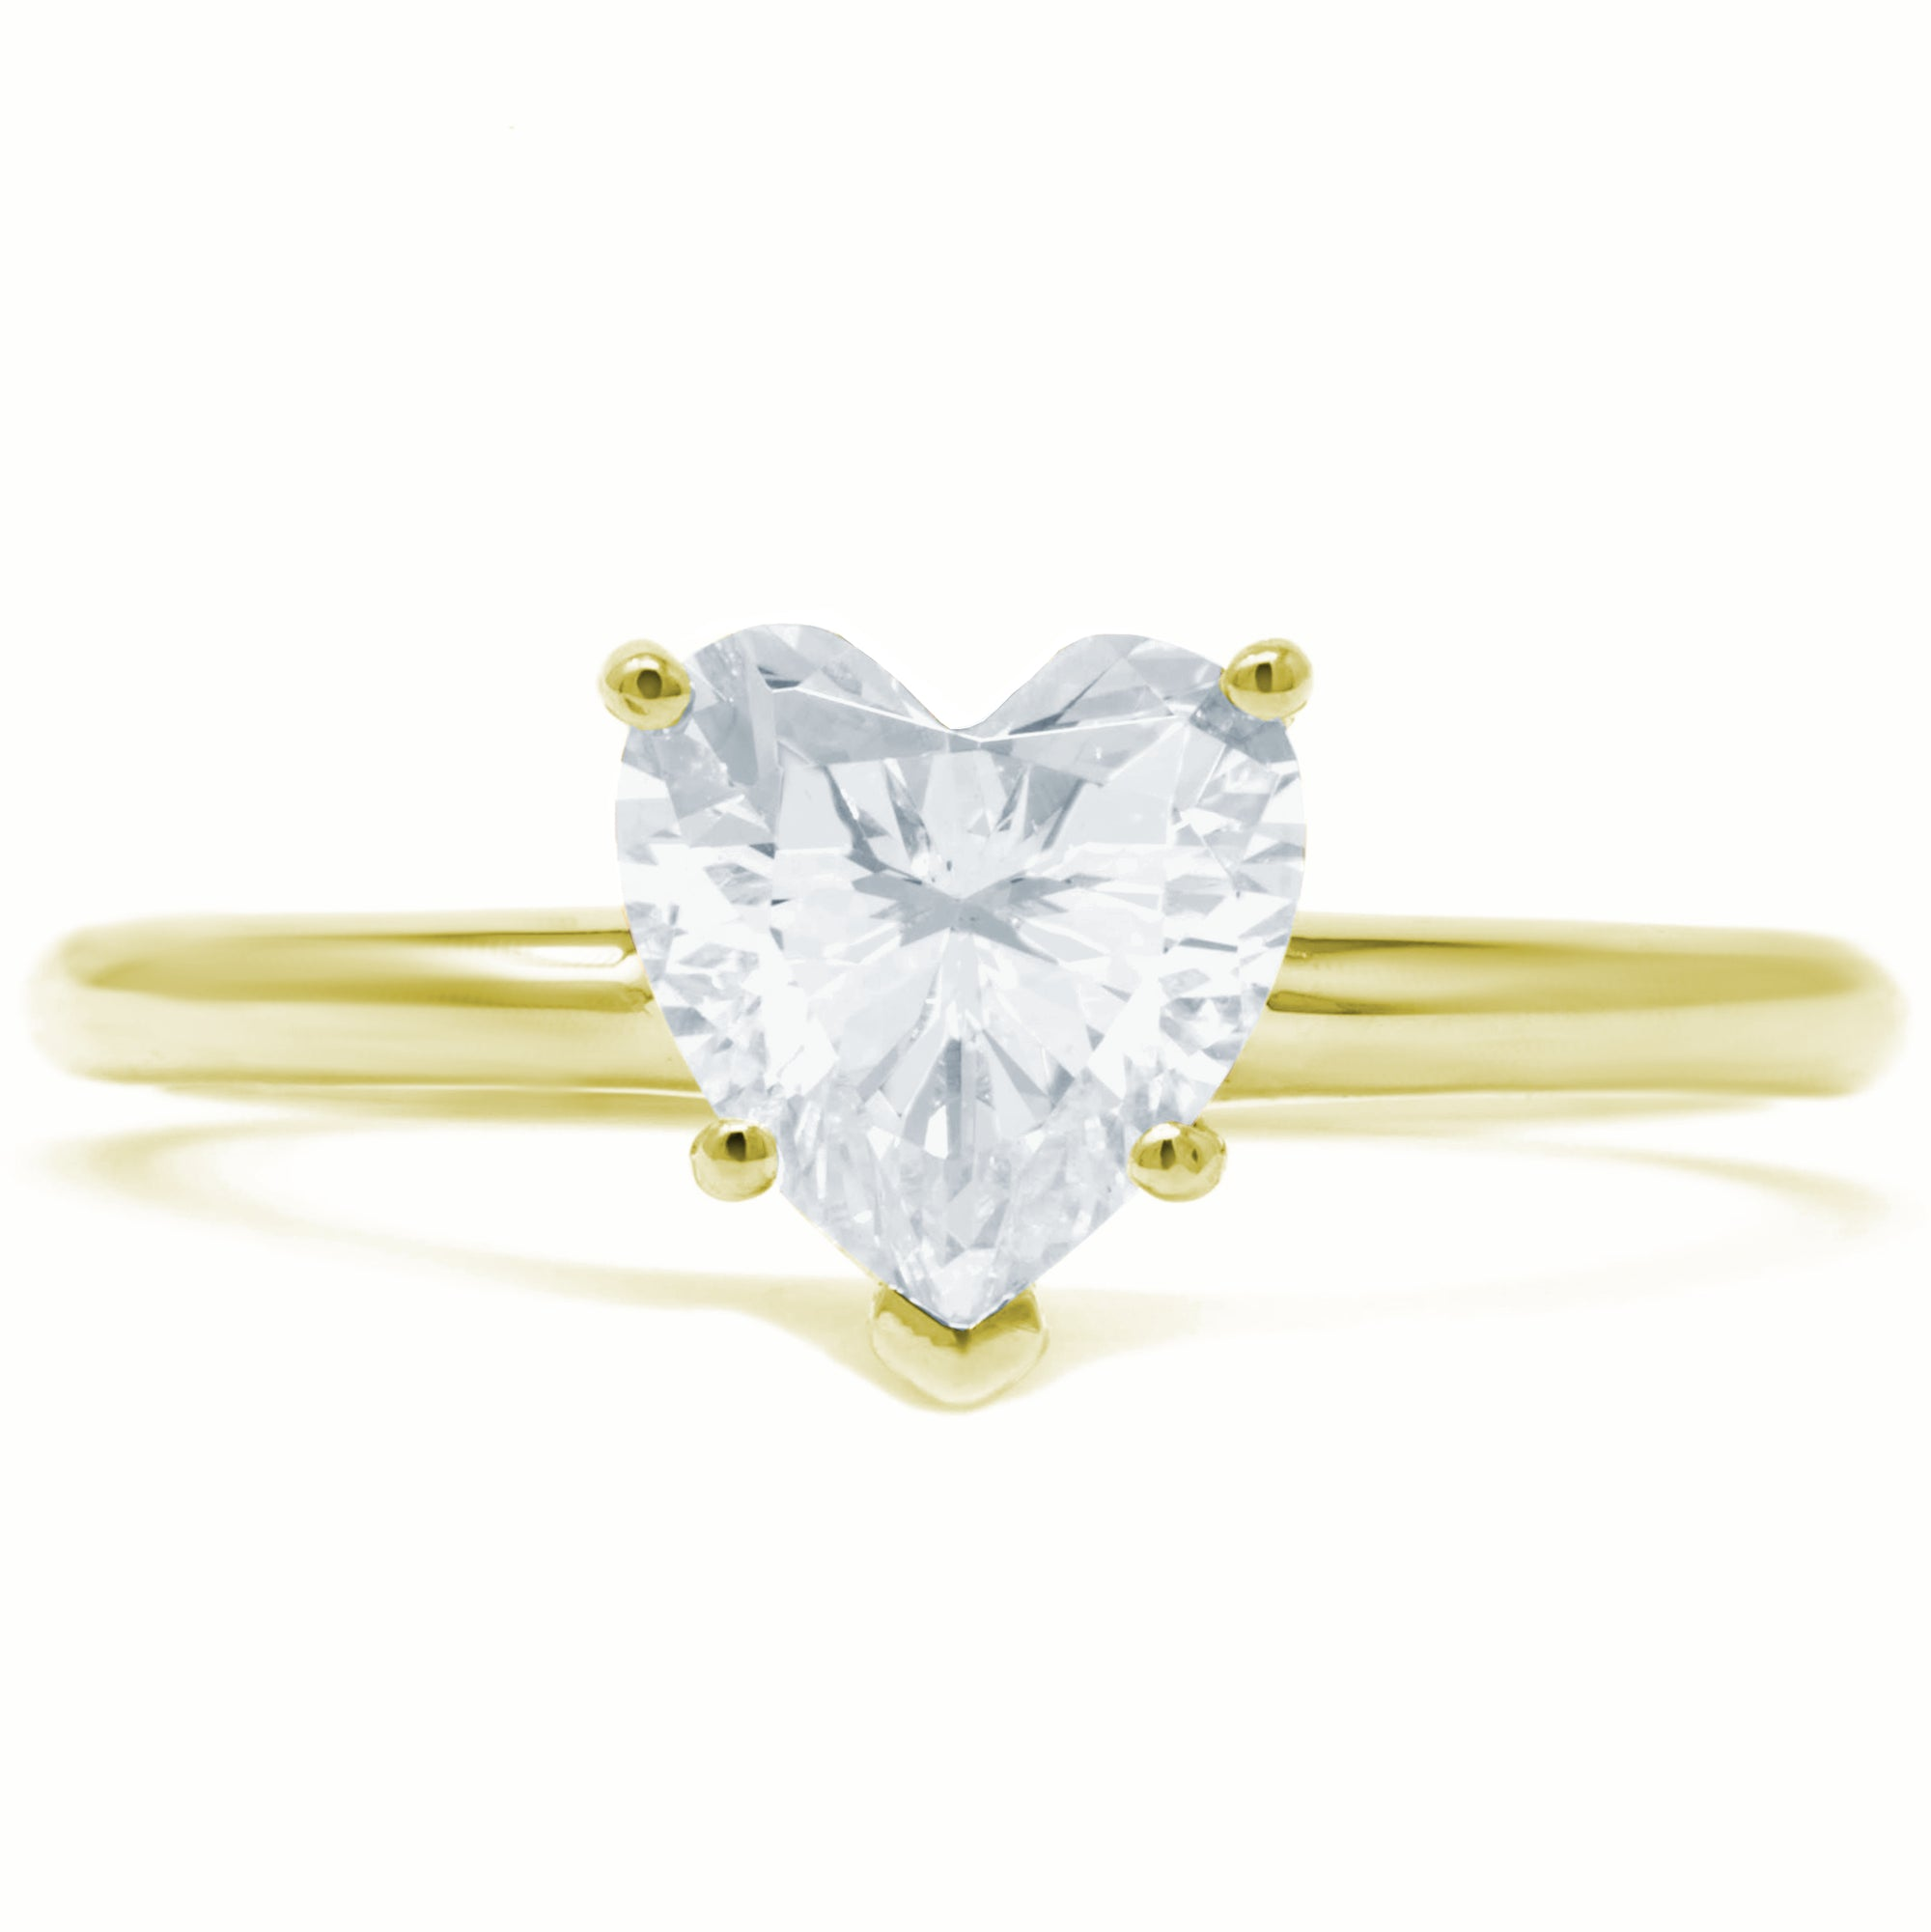 8bc646818ebf5 1 Ct. Heart Shape Solid 14K Yellow Gold Solitaire Engagement Ring - Glamour  Life Diamonds